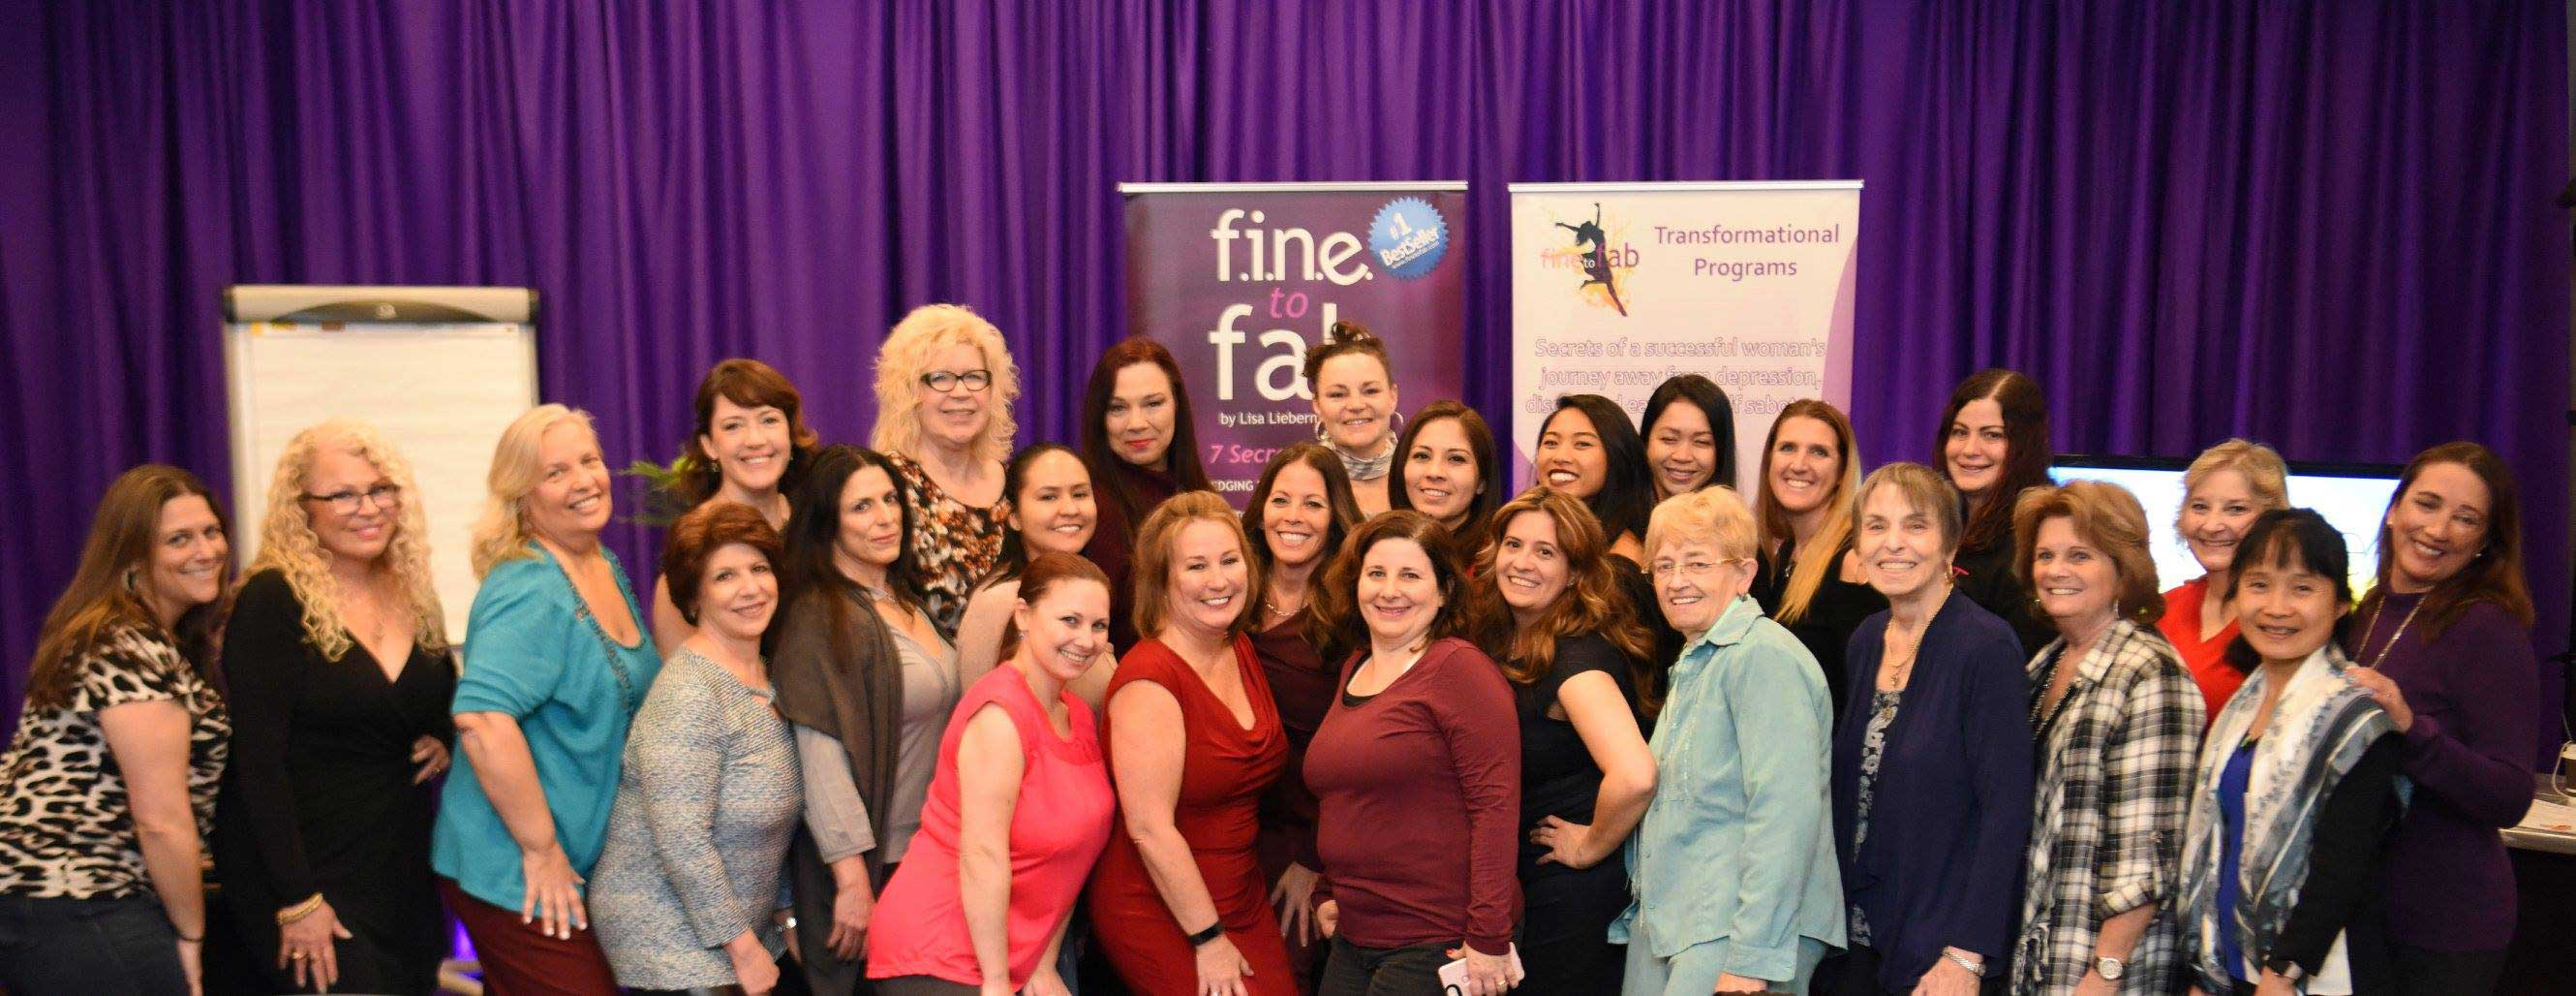 Praise for FINE to FAB Transformational Program